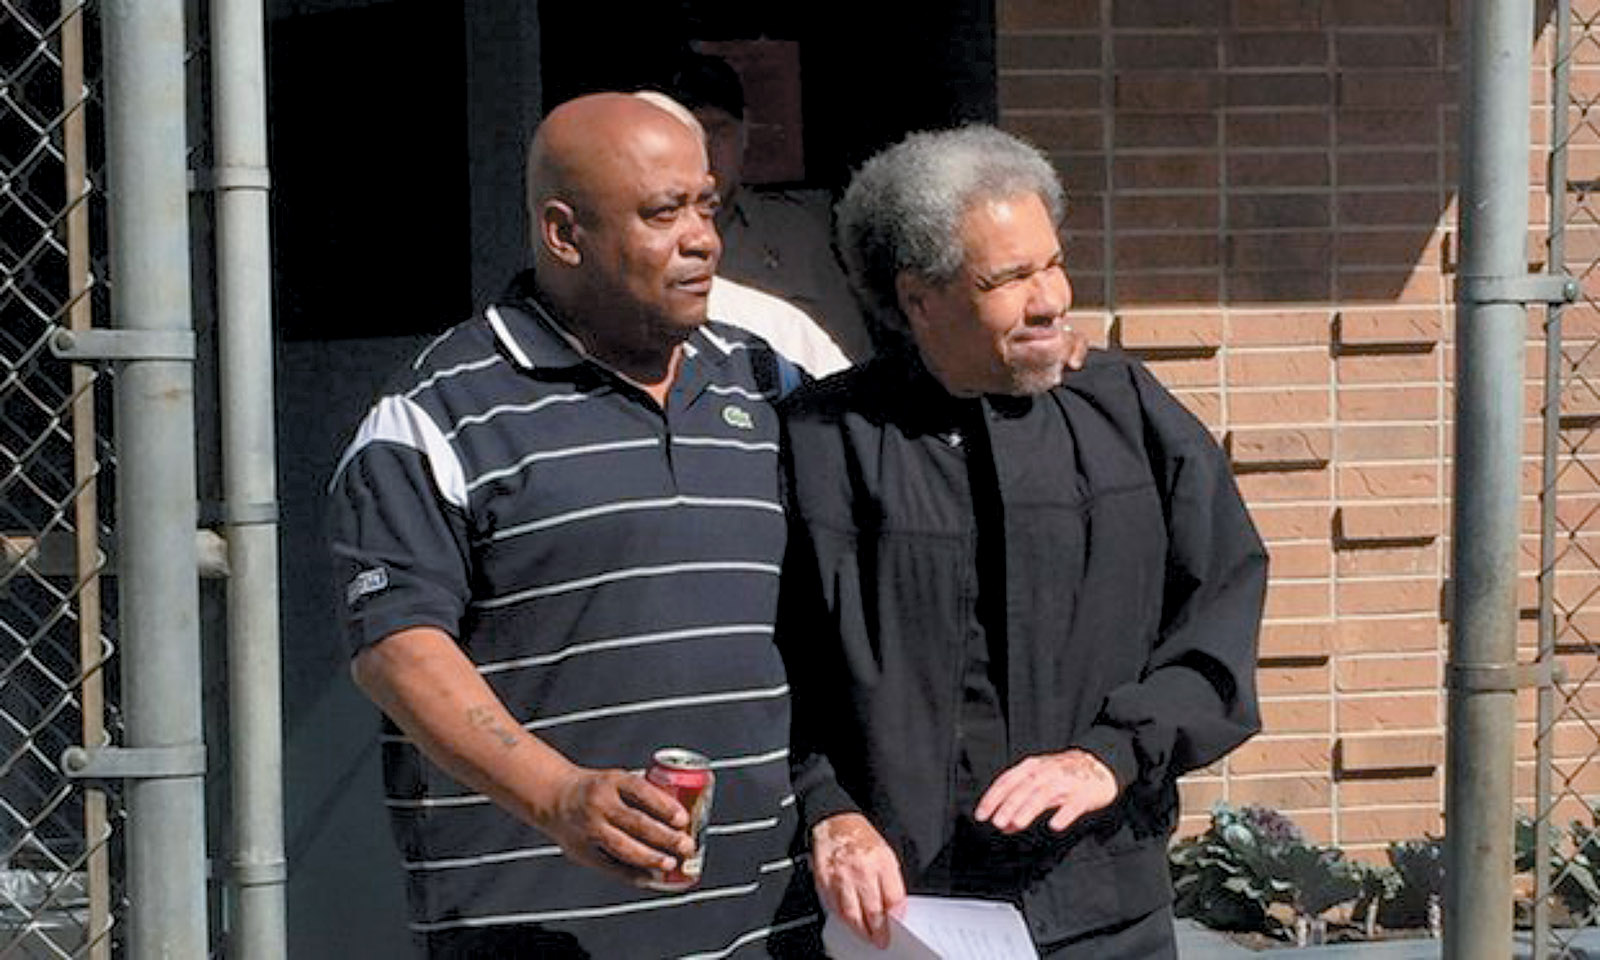 Albert Woodfox (right), accompanied by his brother Michel Mable, leaving West Feliciana Parish Detention Center in Louisiana after forty-three years in solitary confinement, February 2016